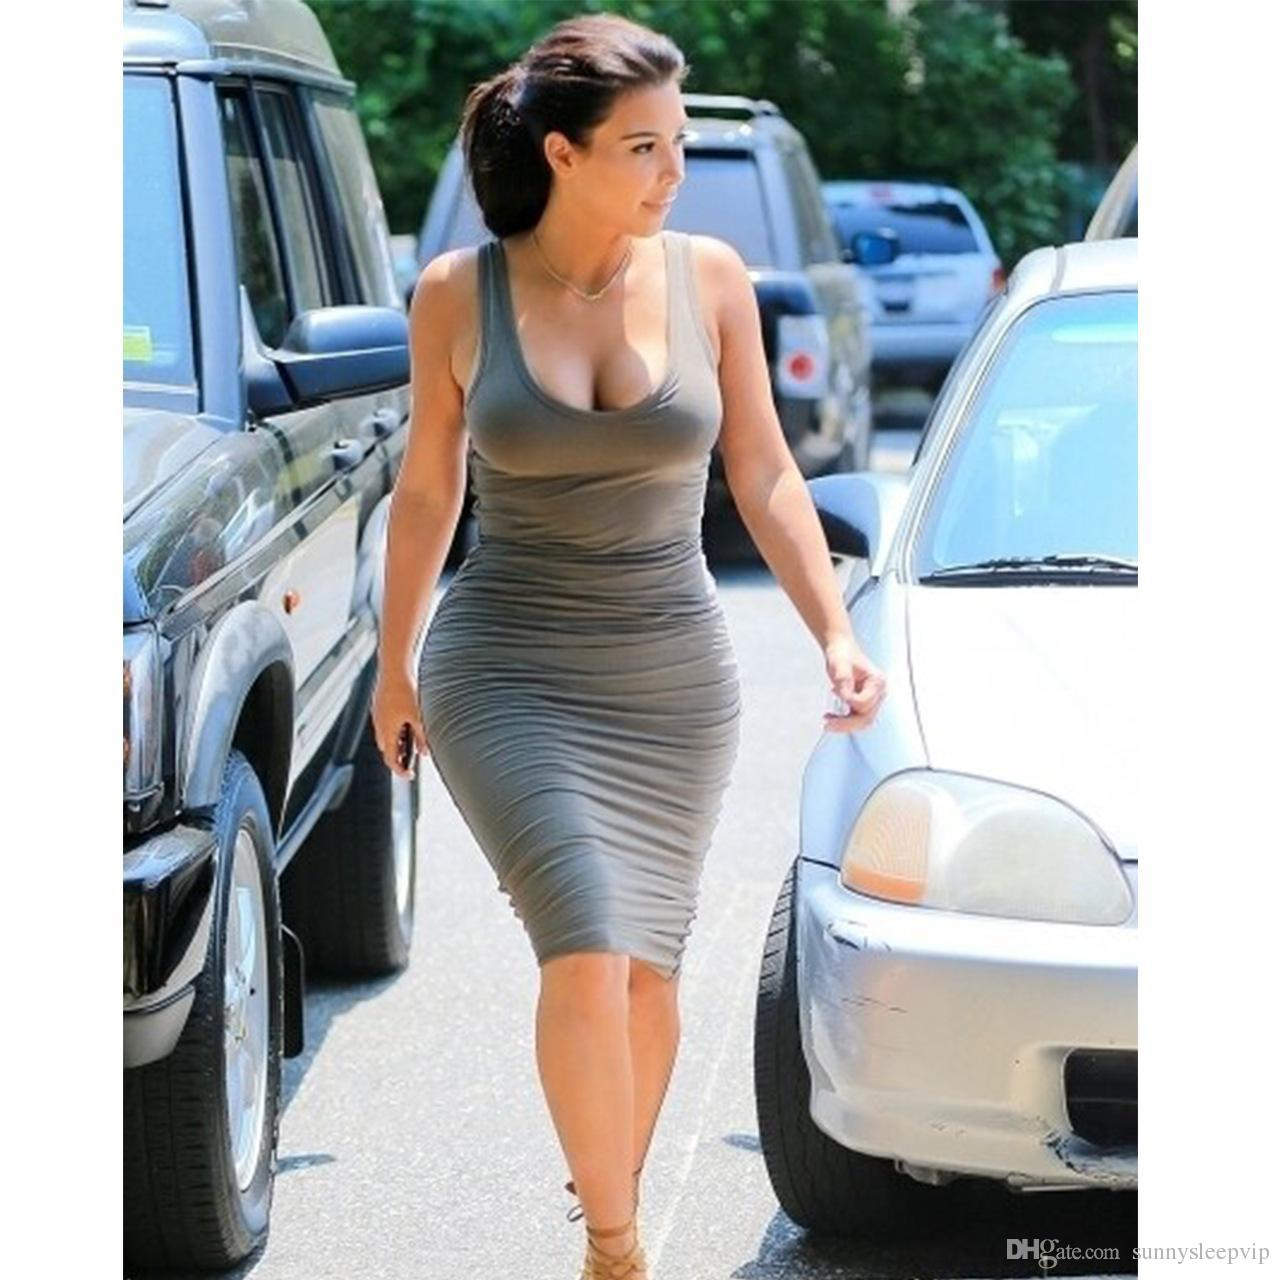 Sexy pics of kim kardashion